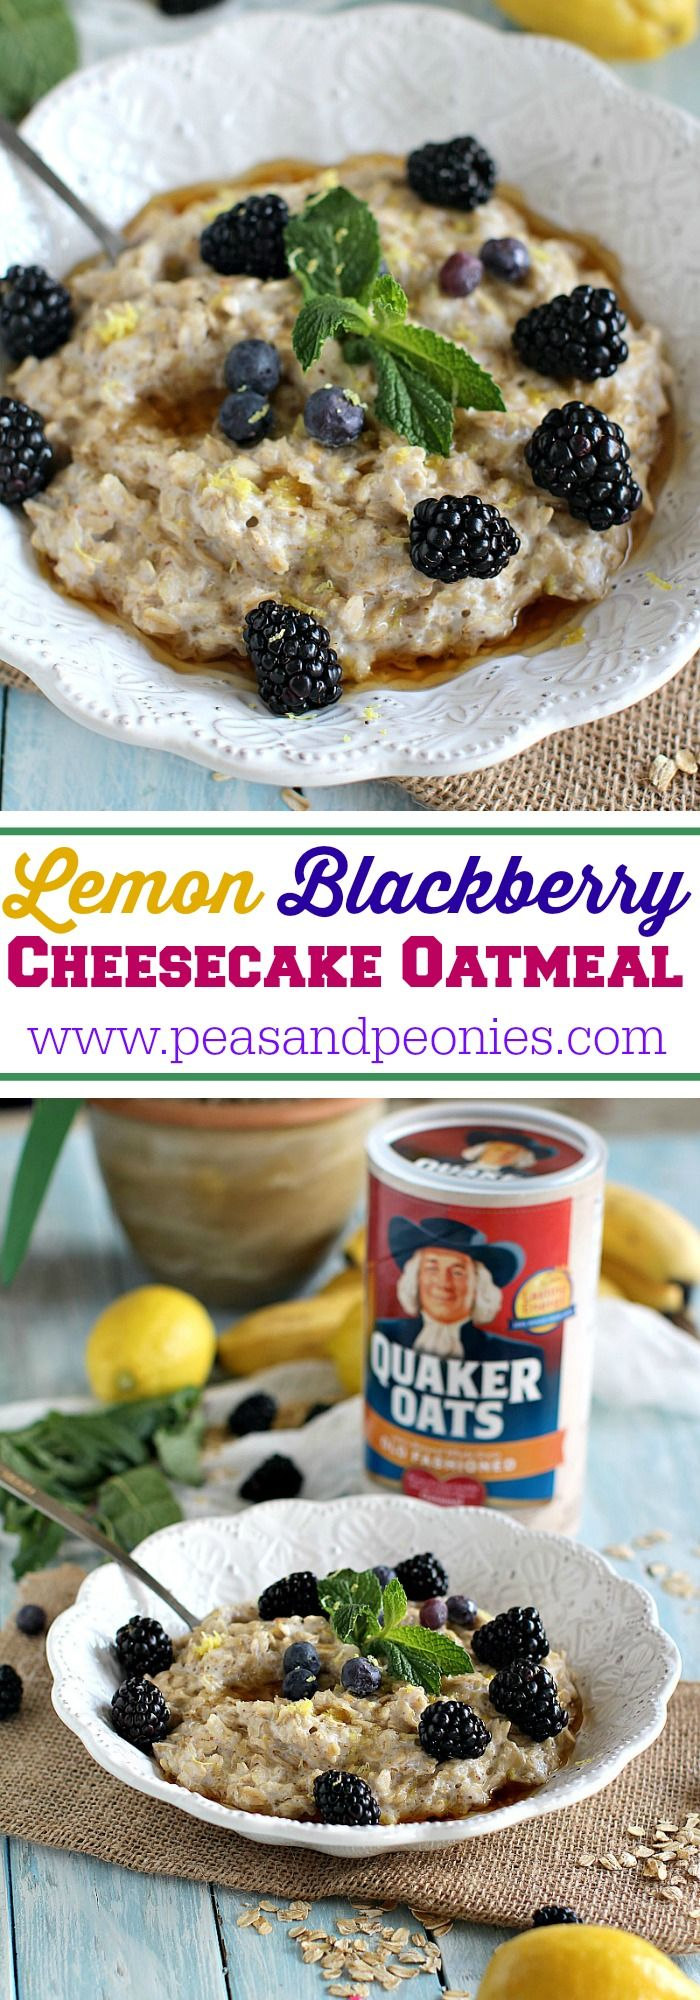 Maple Lemon Blackberry Cheesecake Oatmeal made with milk, lemon zest and ricotta, topped with fresh blackberries and sweet maple syrup! #BringYourBestBowl #Walmart #ad